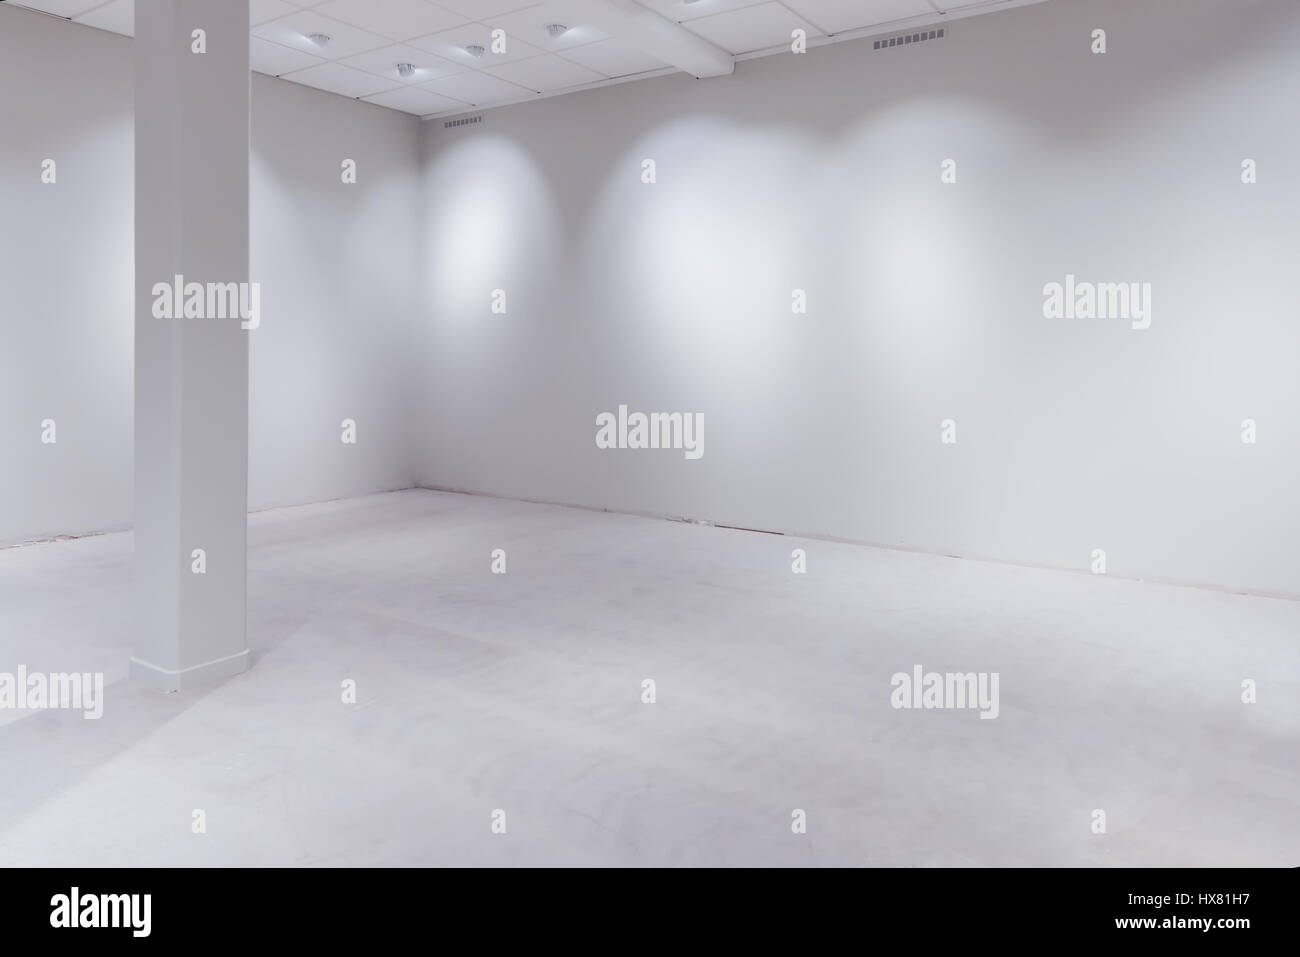 Spot lights and blank white wall as copy space, empty department store or warehouse - Stock Image